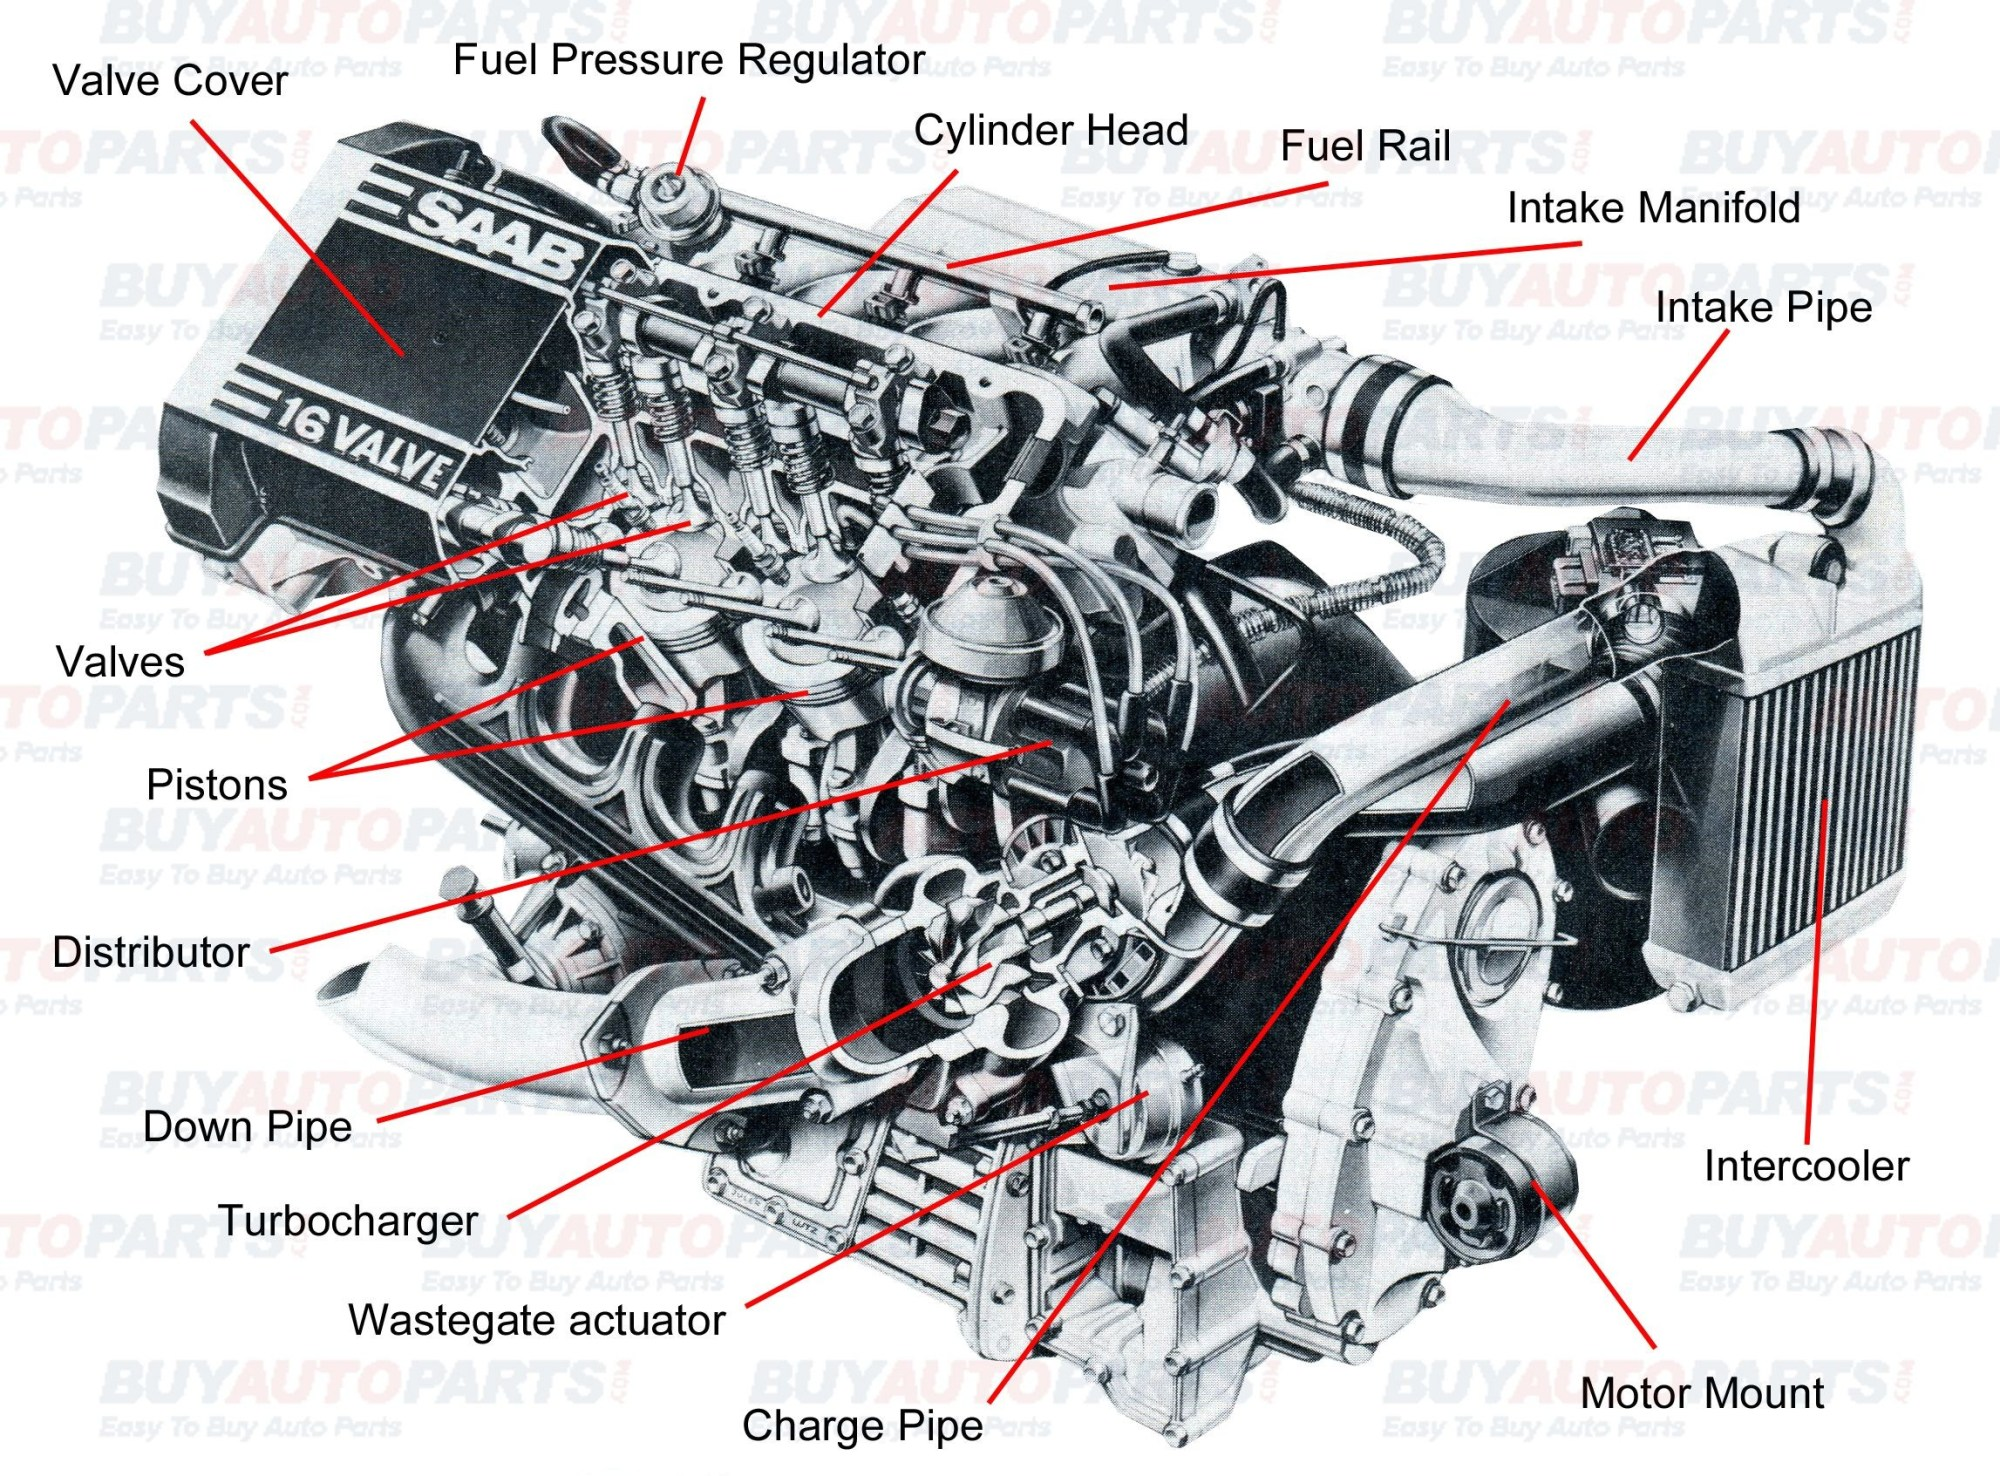 hight resolution of honda cb750 engine diagram all internal bustion engines have the same basic ponents the of honda